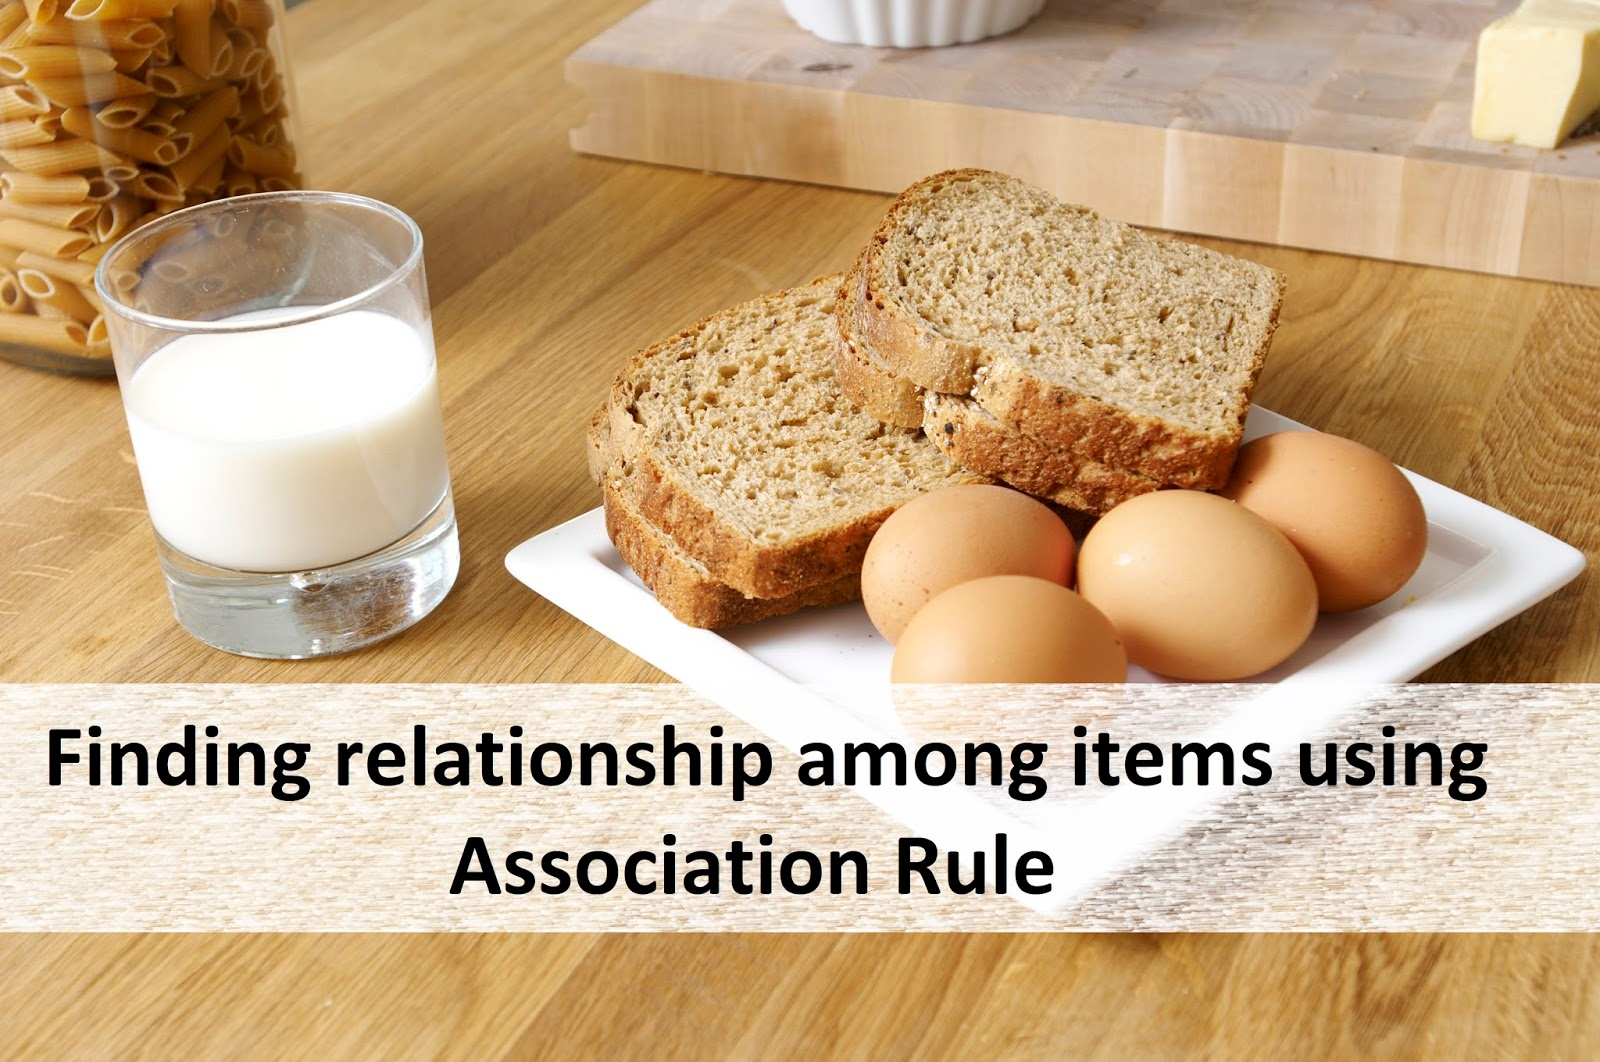 Finding relationship among items using Association Rule